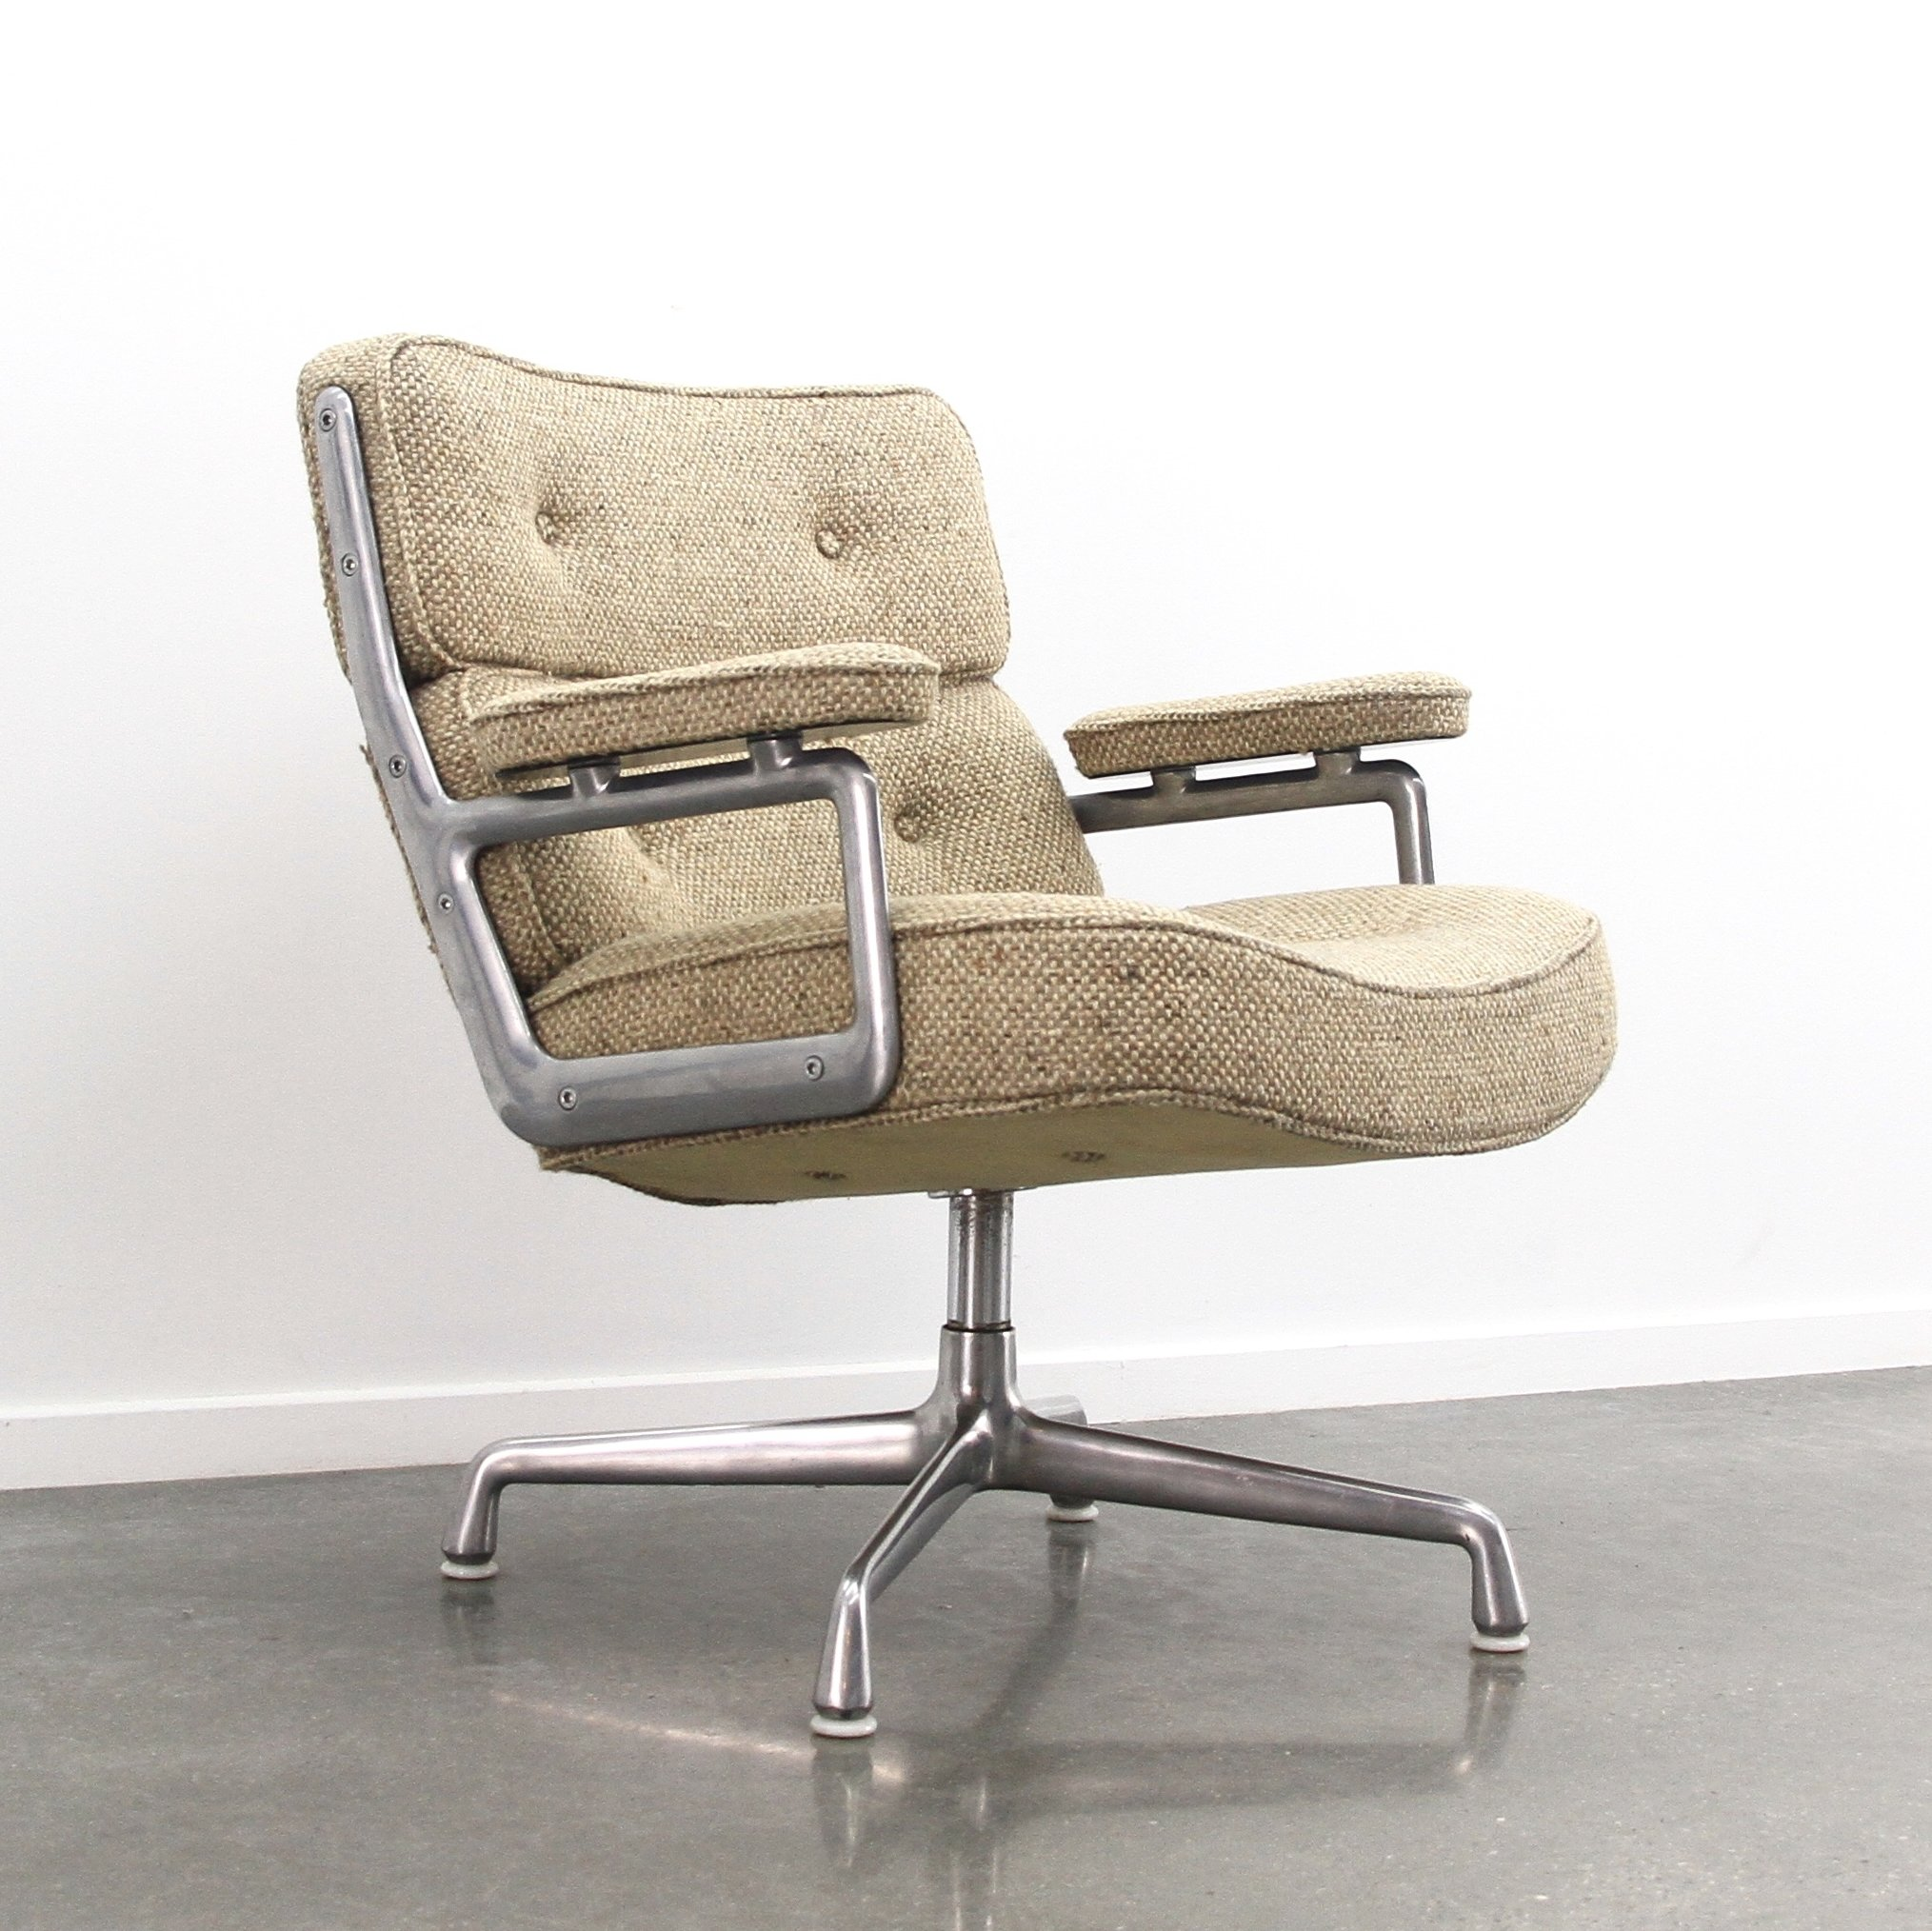 Rare fabric 39 time life 39 lobby chair by charles ray eames for Eames mobilier